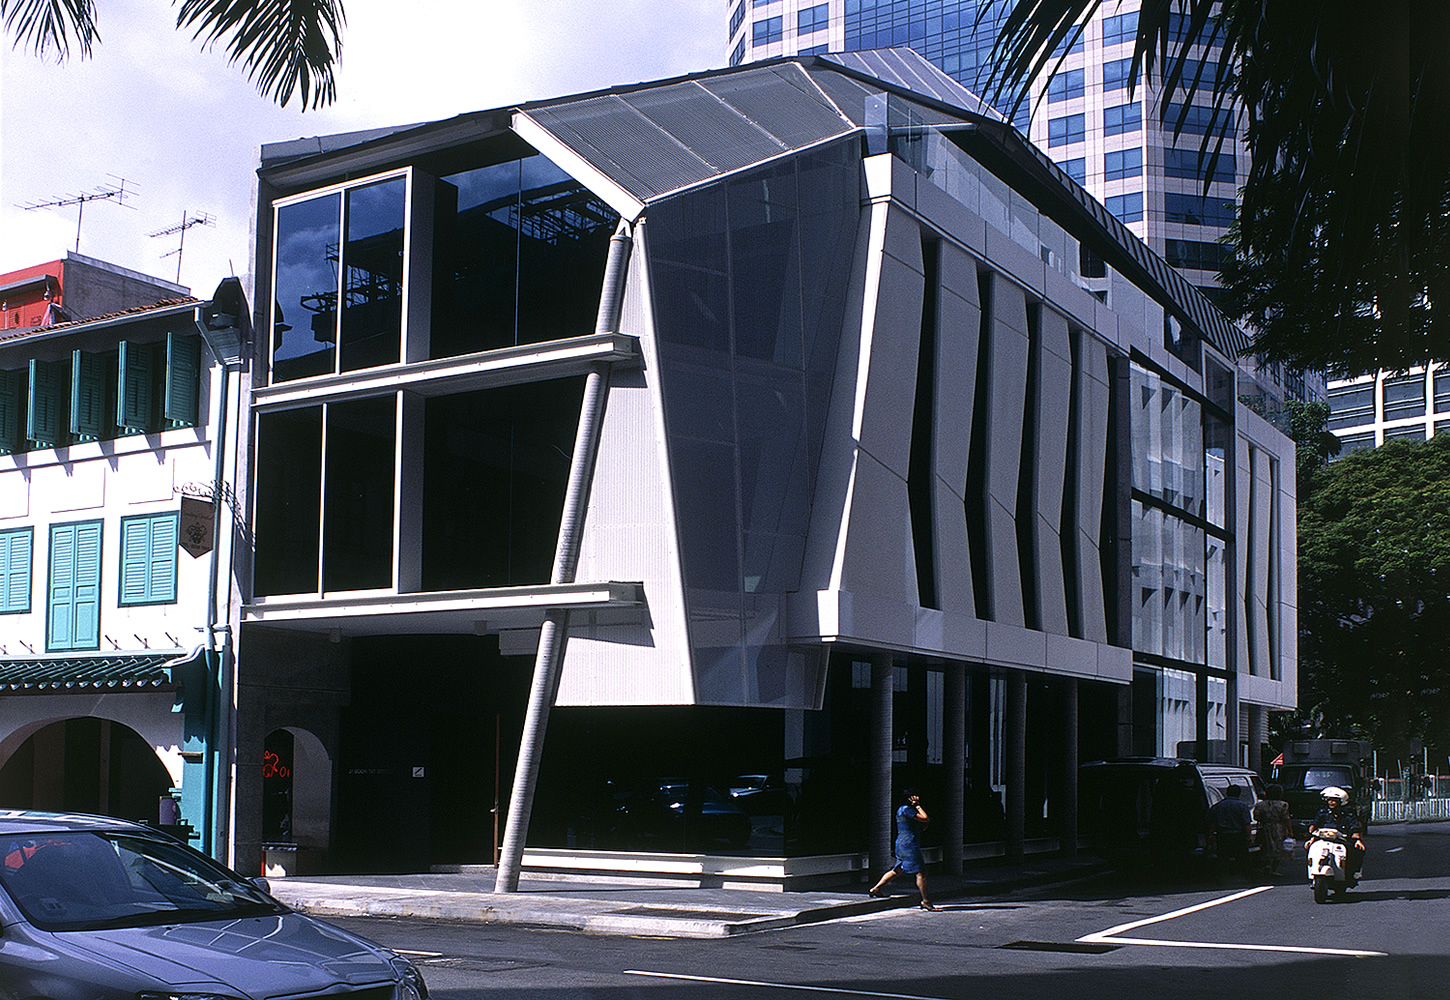 Boon Tat Offices, S'pore